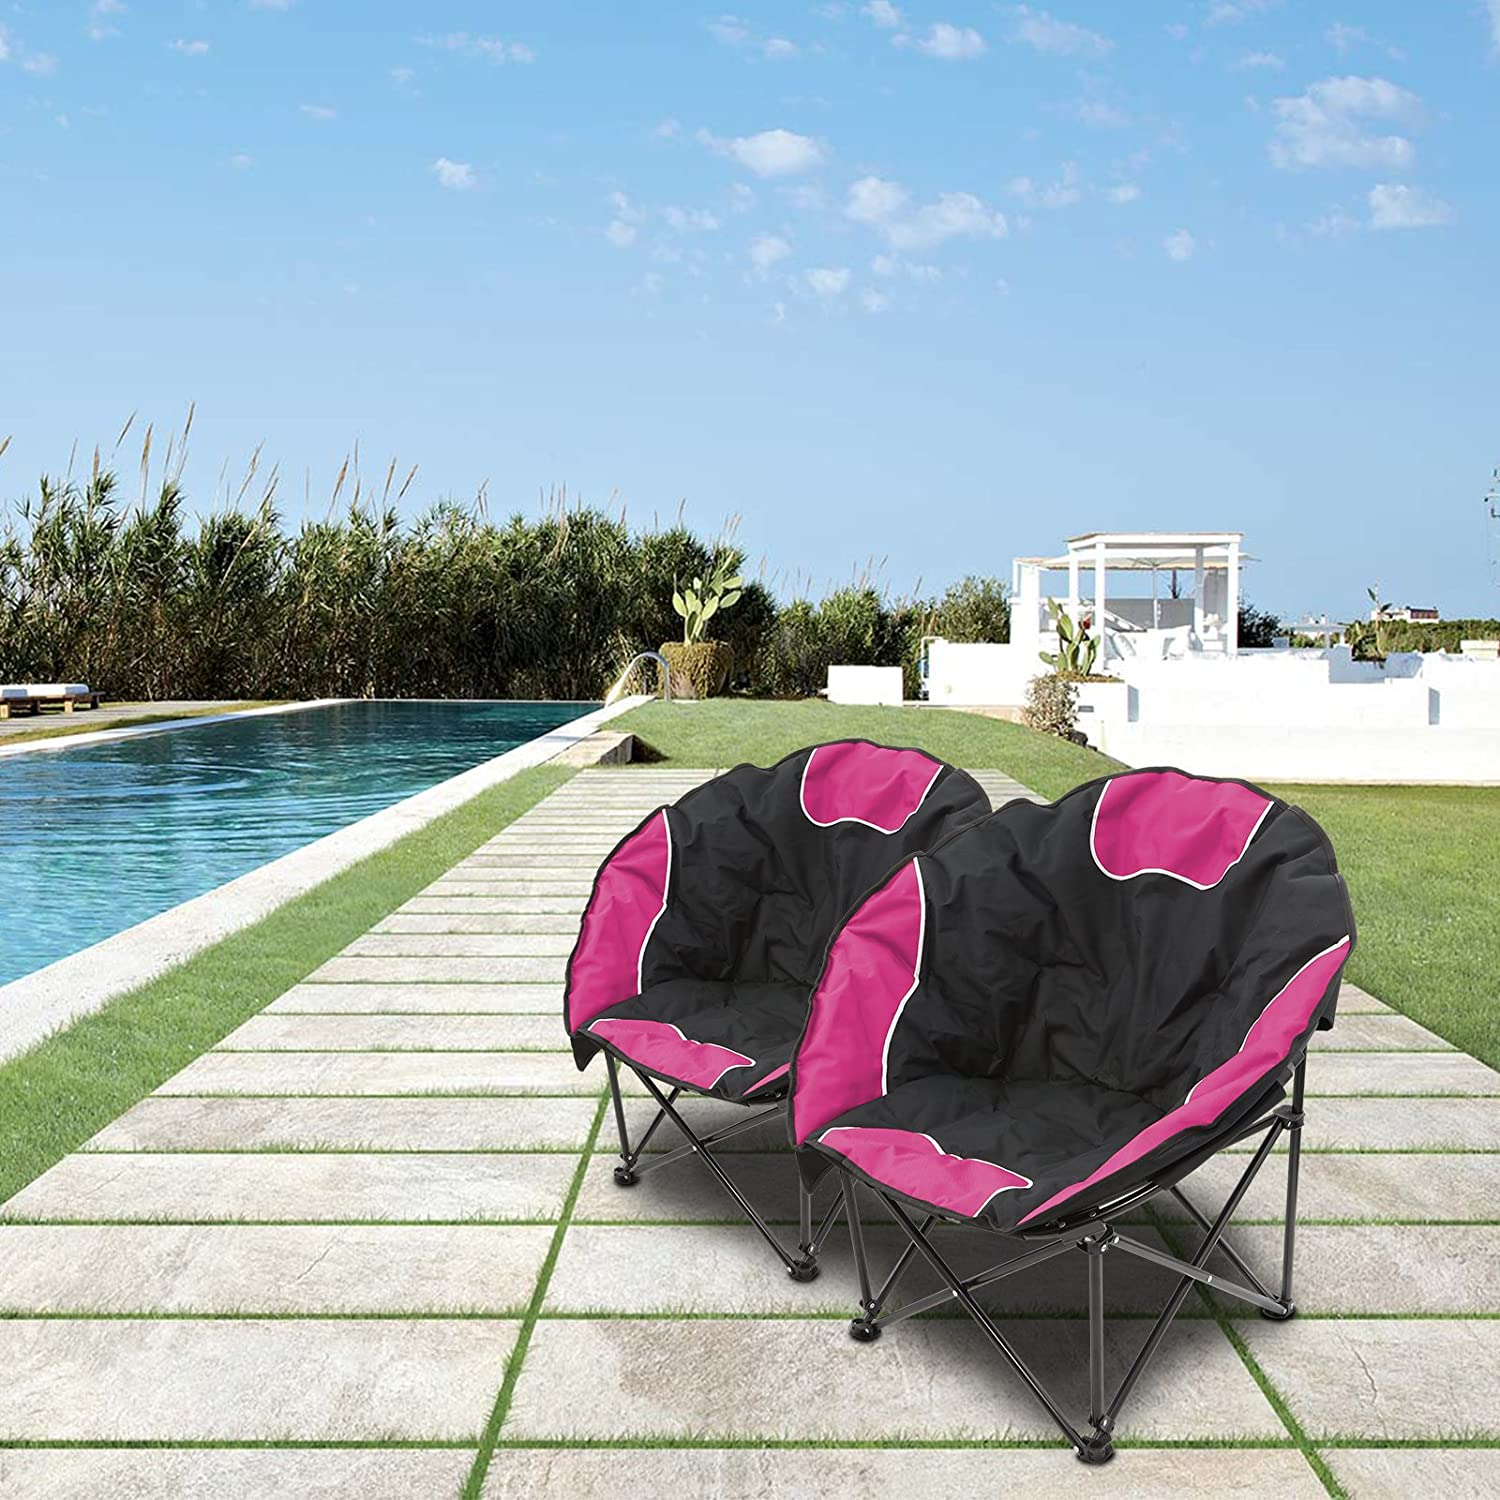 Magshion Folding Padded Round Camping Beach Chair with Storage /& Carry Bag Set of 2